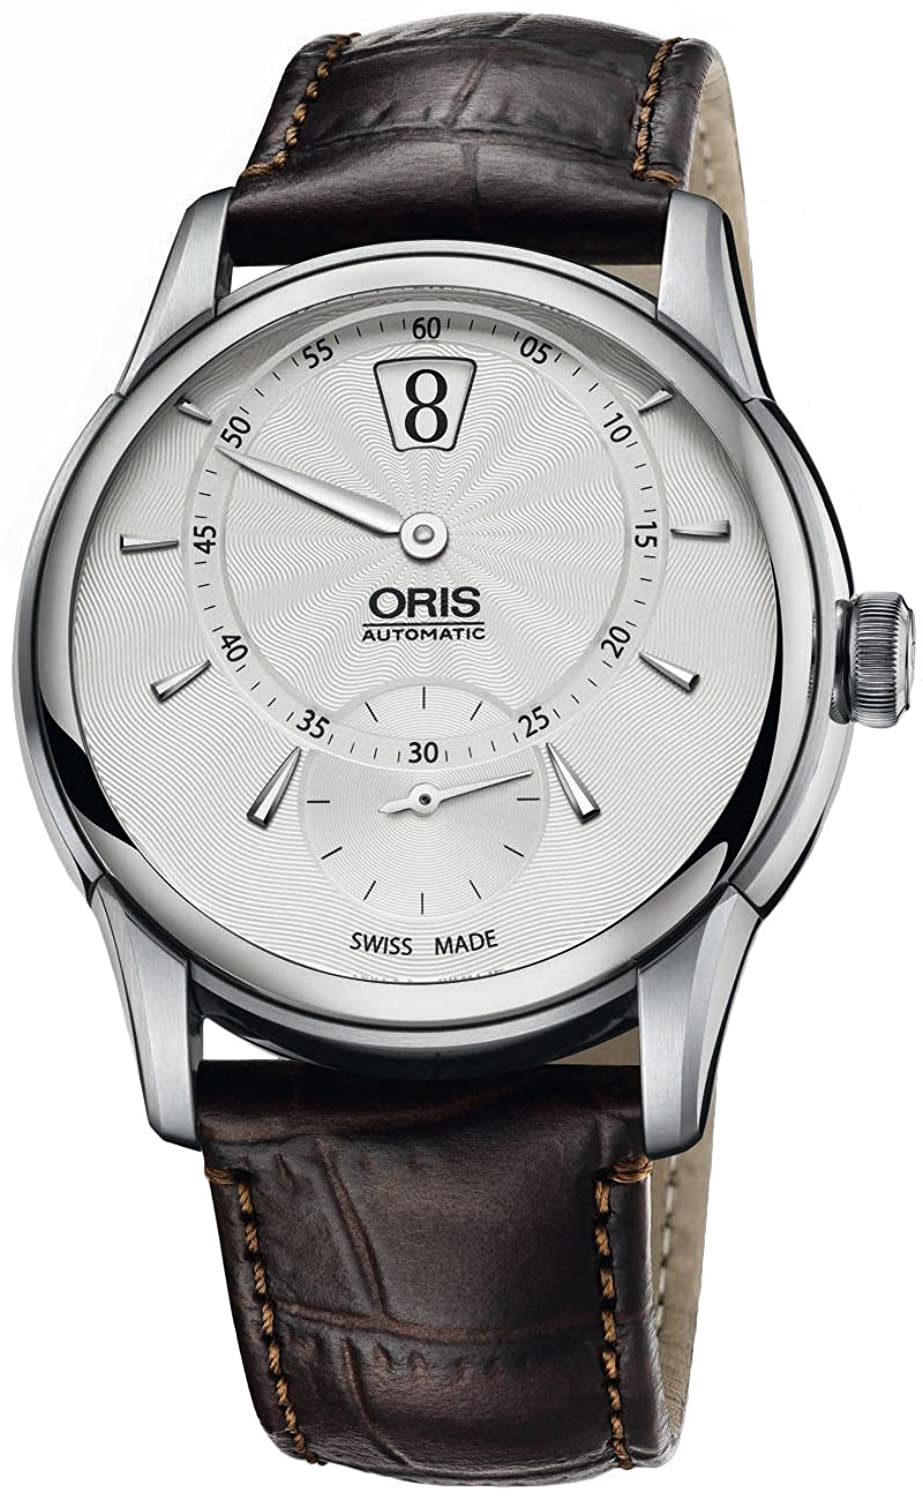 products watches limited of aquis edition or life w source oris rubber rs c watch set